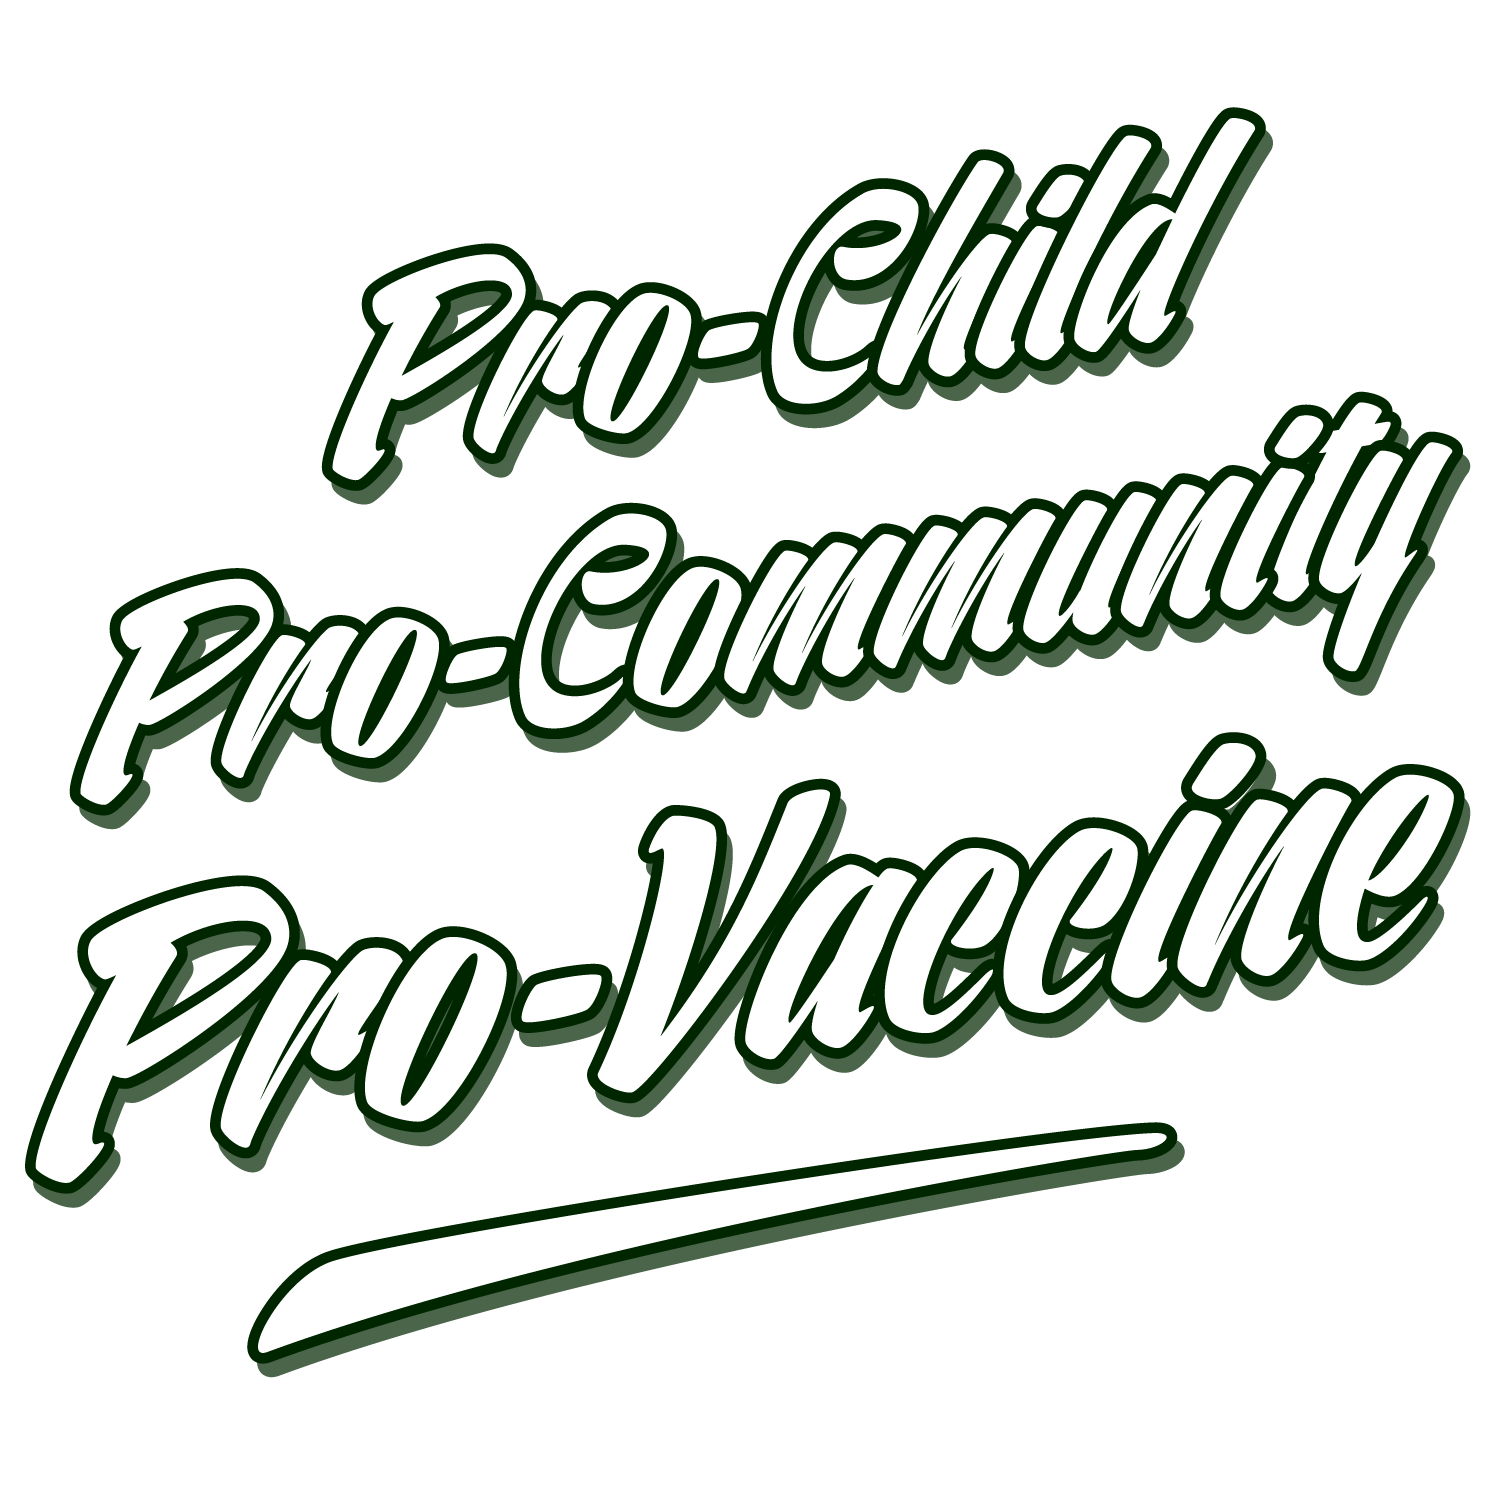 pros and cons of vaccinations Free essay: jennifer krahenbuhl english 102 patricia mckeown september 1st 2014 pros and cons to vaccinations in children almost everyone has heard of the.